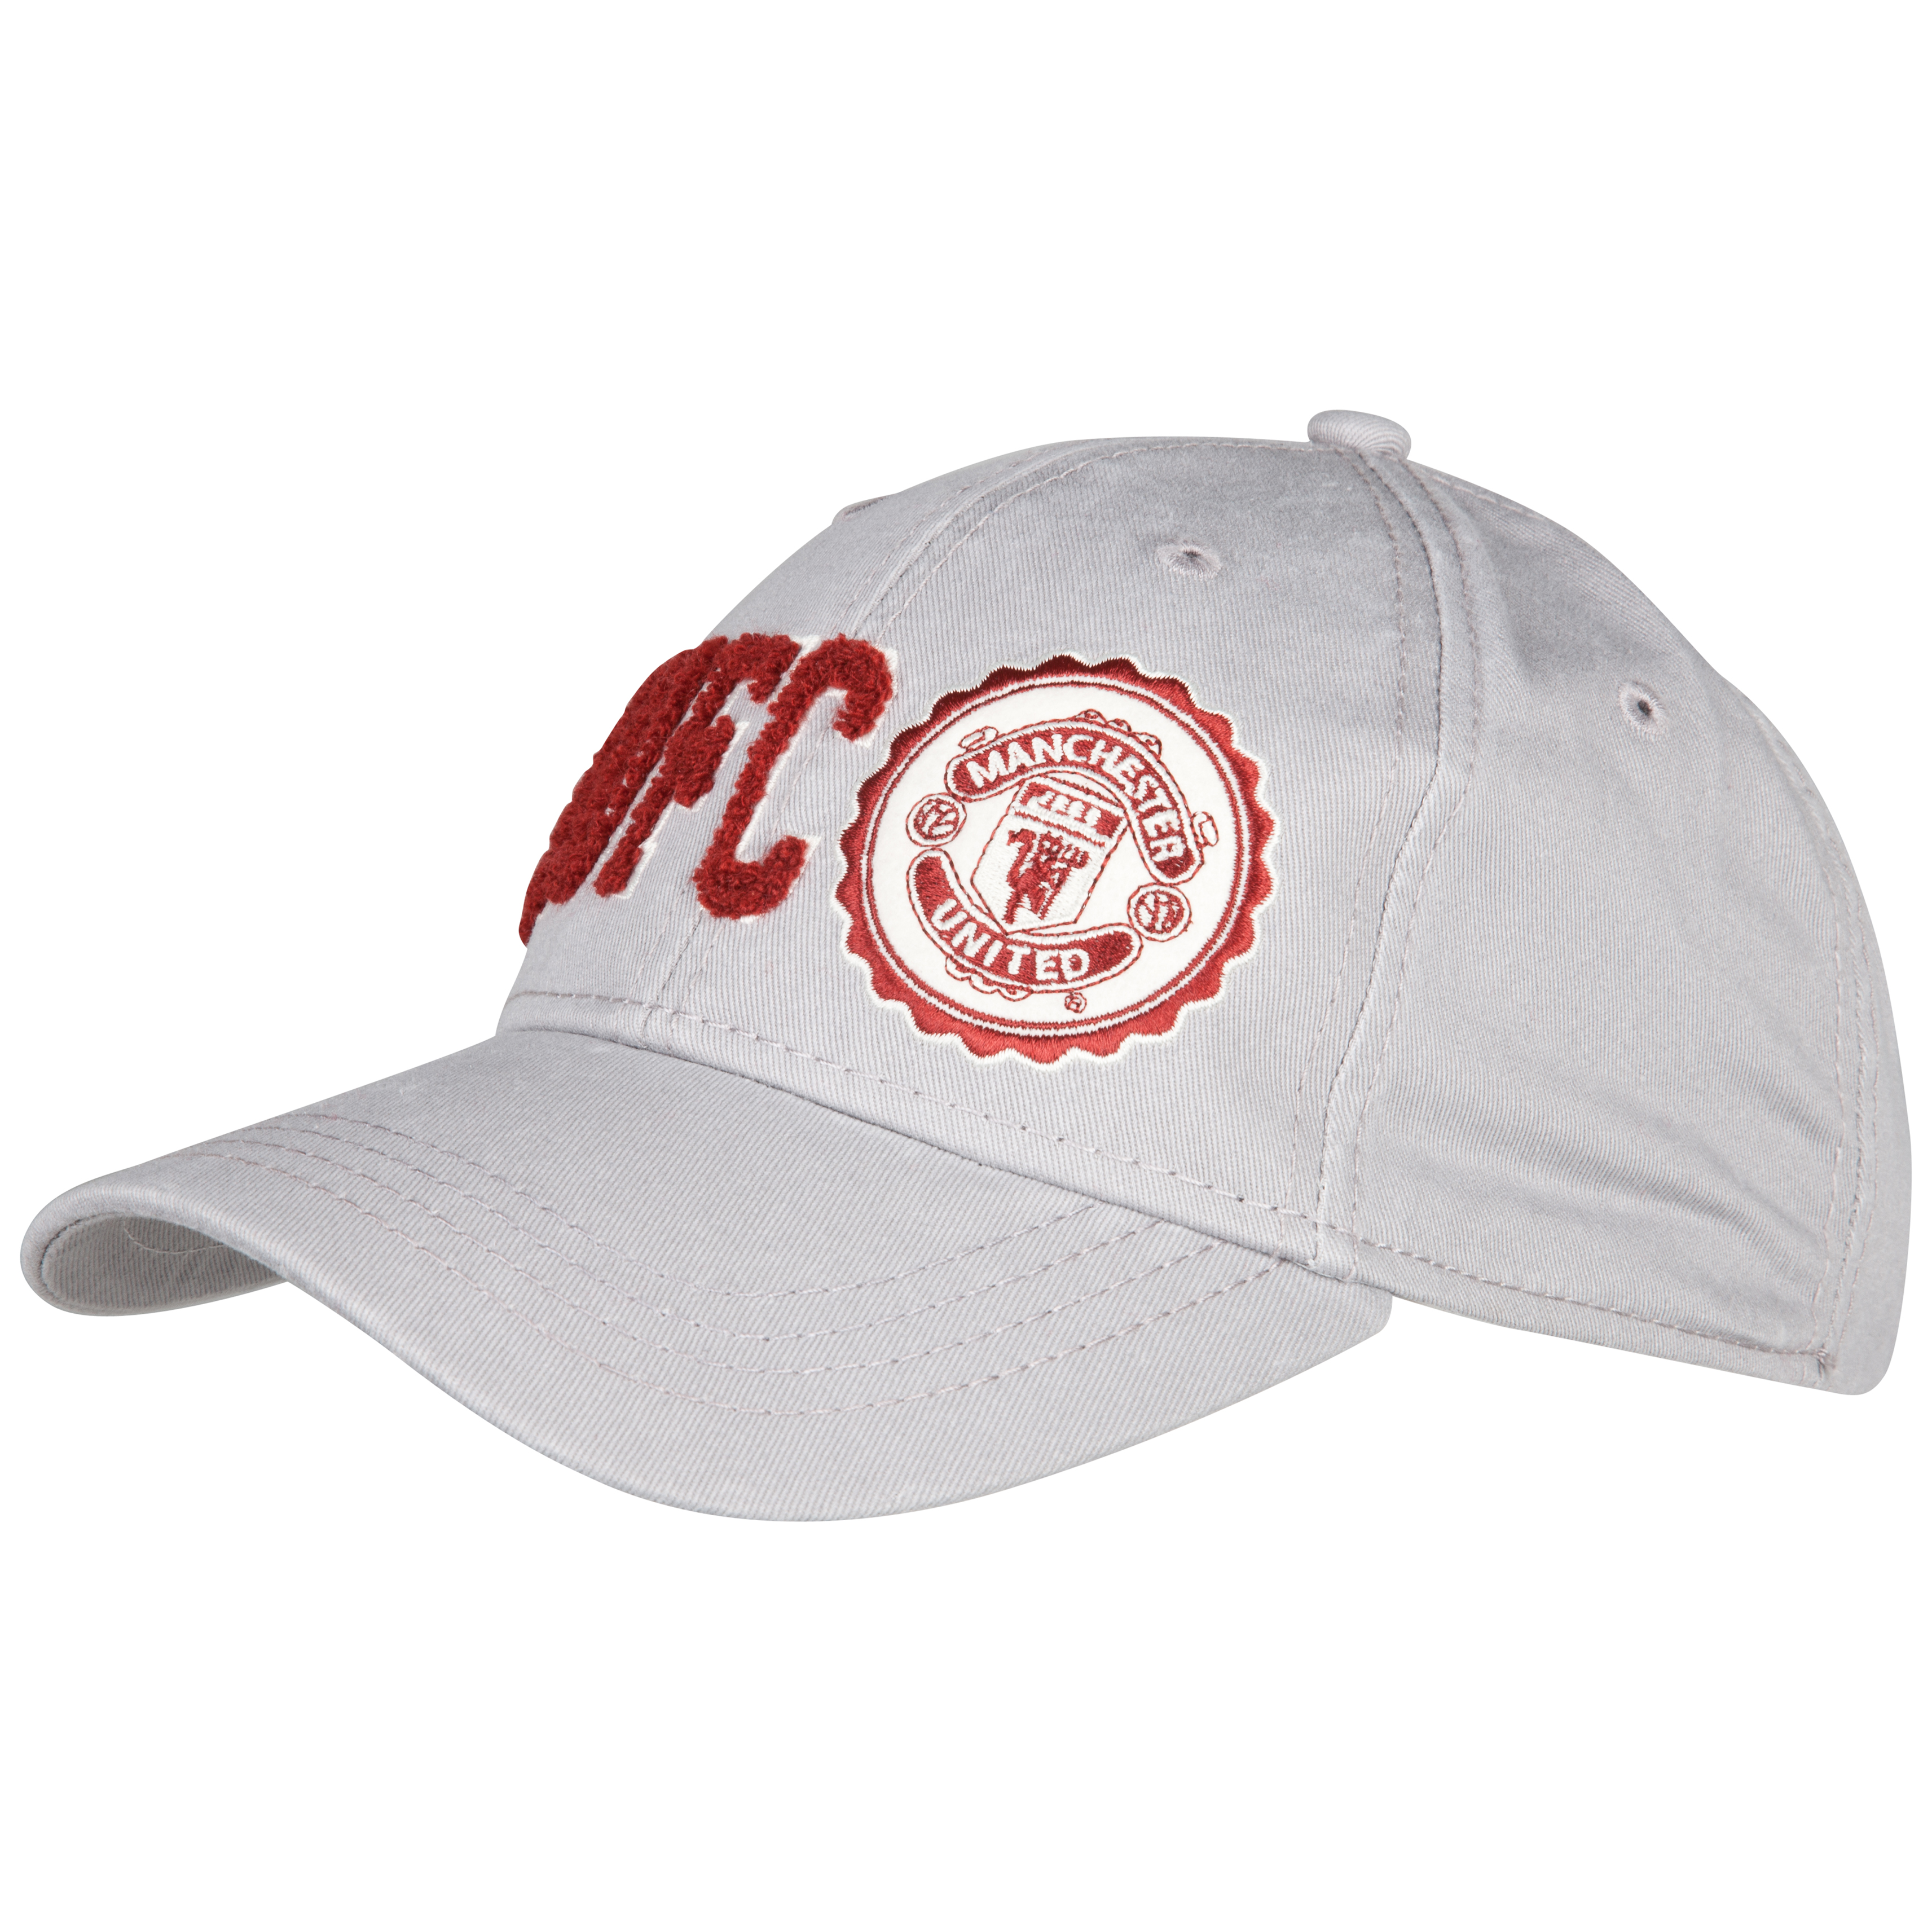 Manchester United Campus Baseball Cap -Grey - Mens